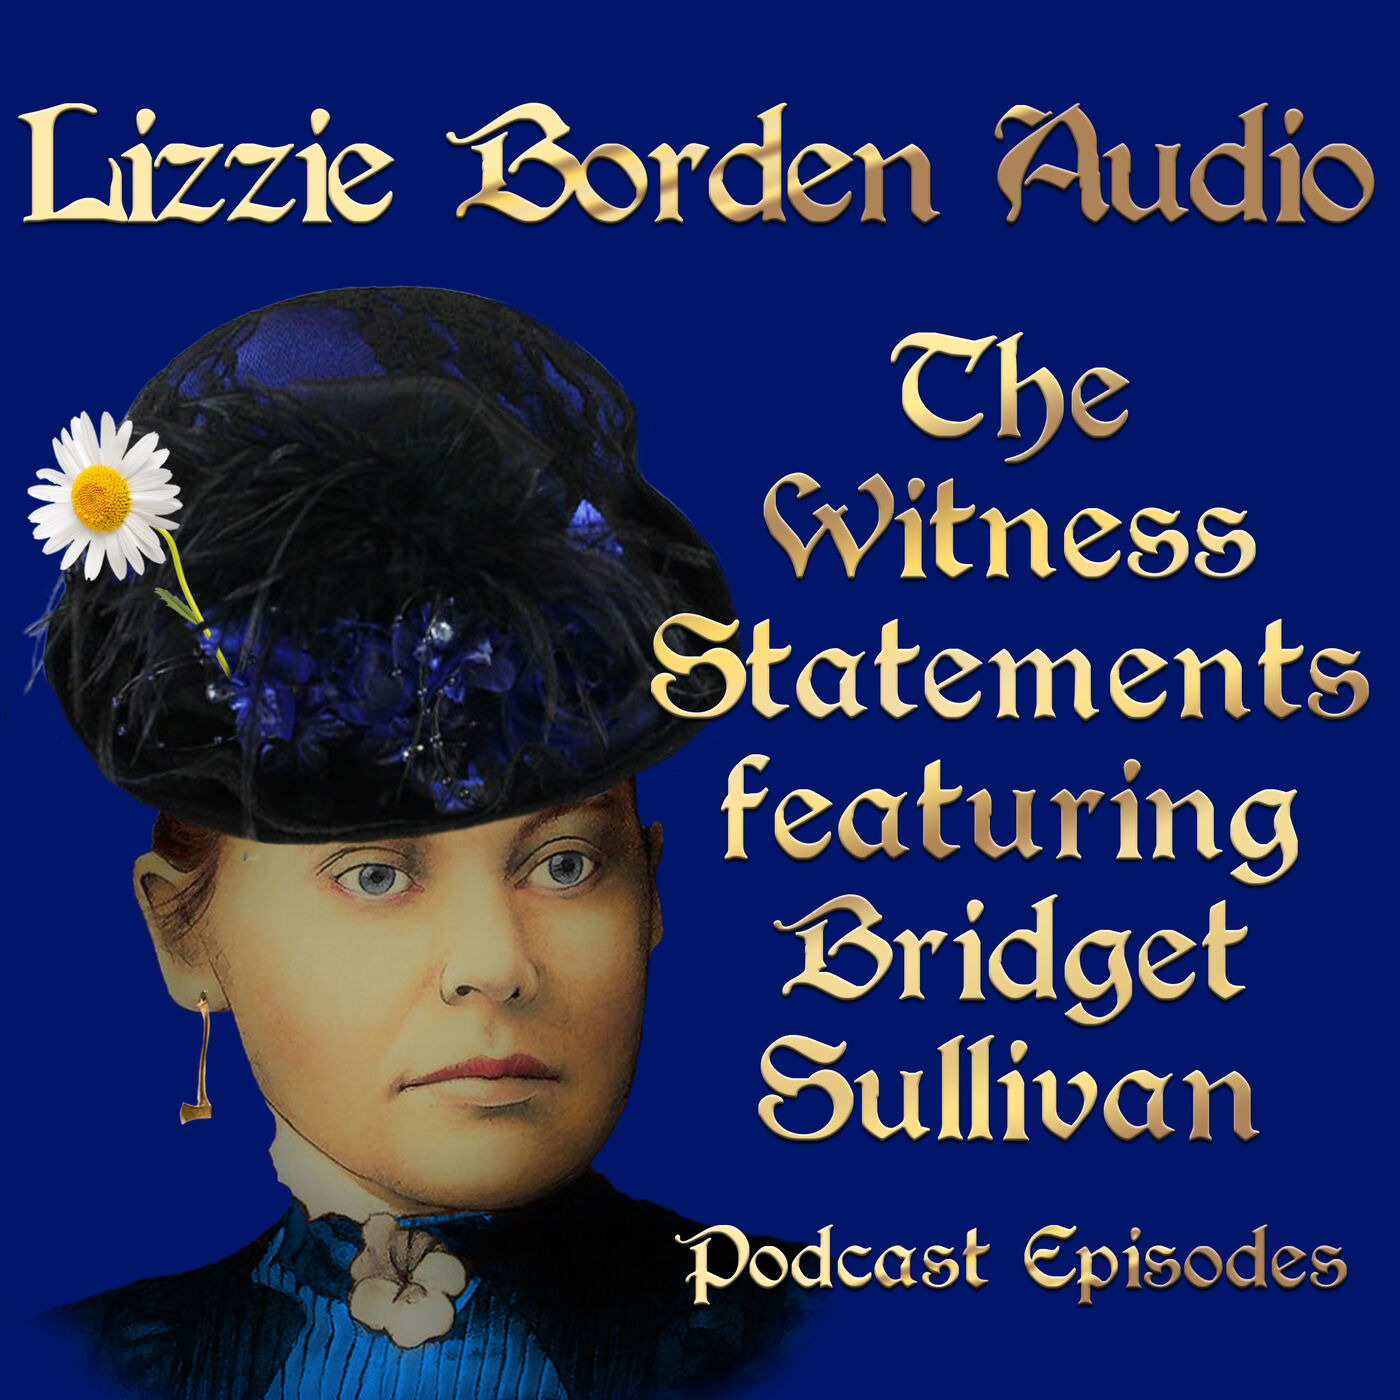 Witness Statements of Lizzie Borden, Episode 1